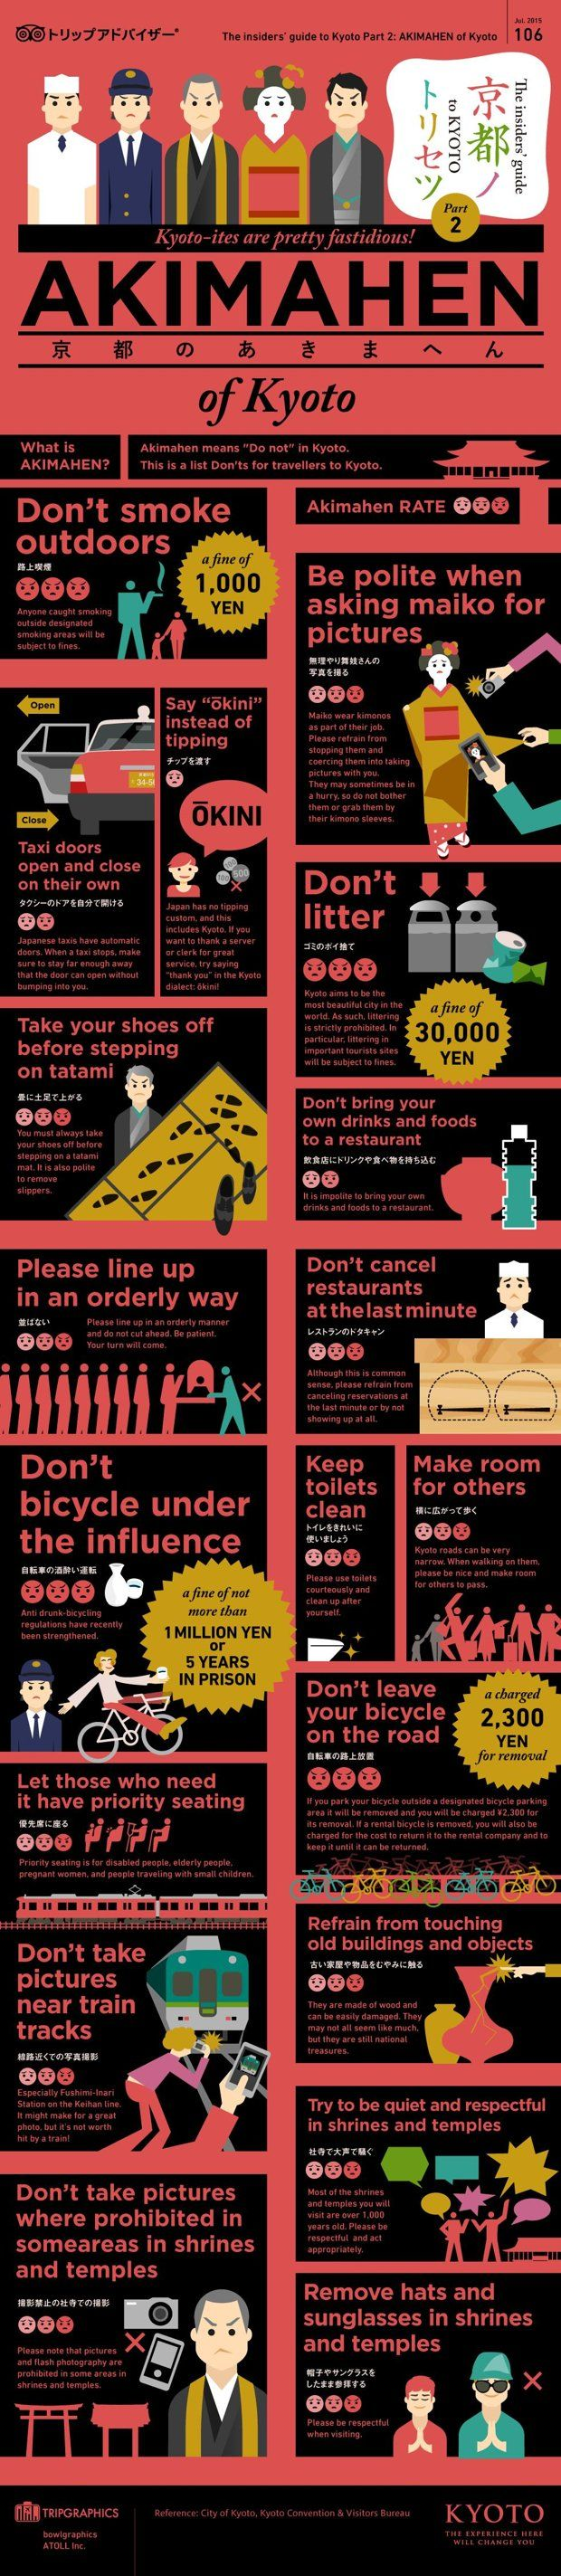 """Kyoto Releases """"Akimahen"""" Etiquette Manual for Tourists Featuring Emoji - CityLab. Pertinent anywhere, not just Japan! kyoto, kansai, honshu, the real japan, real japan, japan, japanese, guide, tips, resource, tricks, information, guide, community, adventure, explore, trip, tour, vacation, holiday, planning, travel, tourist, tourism, backpack, hiking http://www.therealjapan.com/subscribe/"""